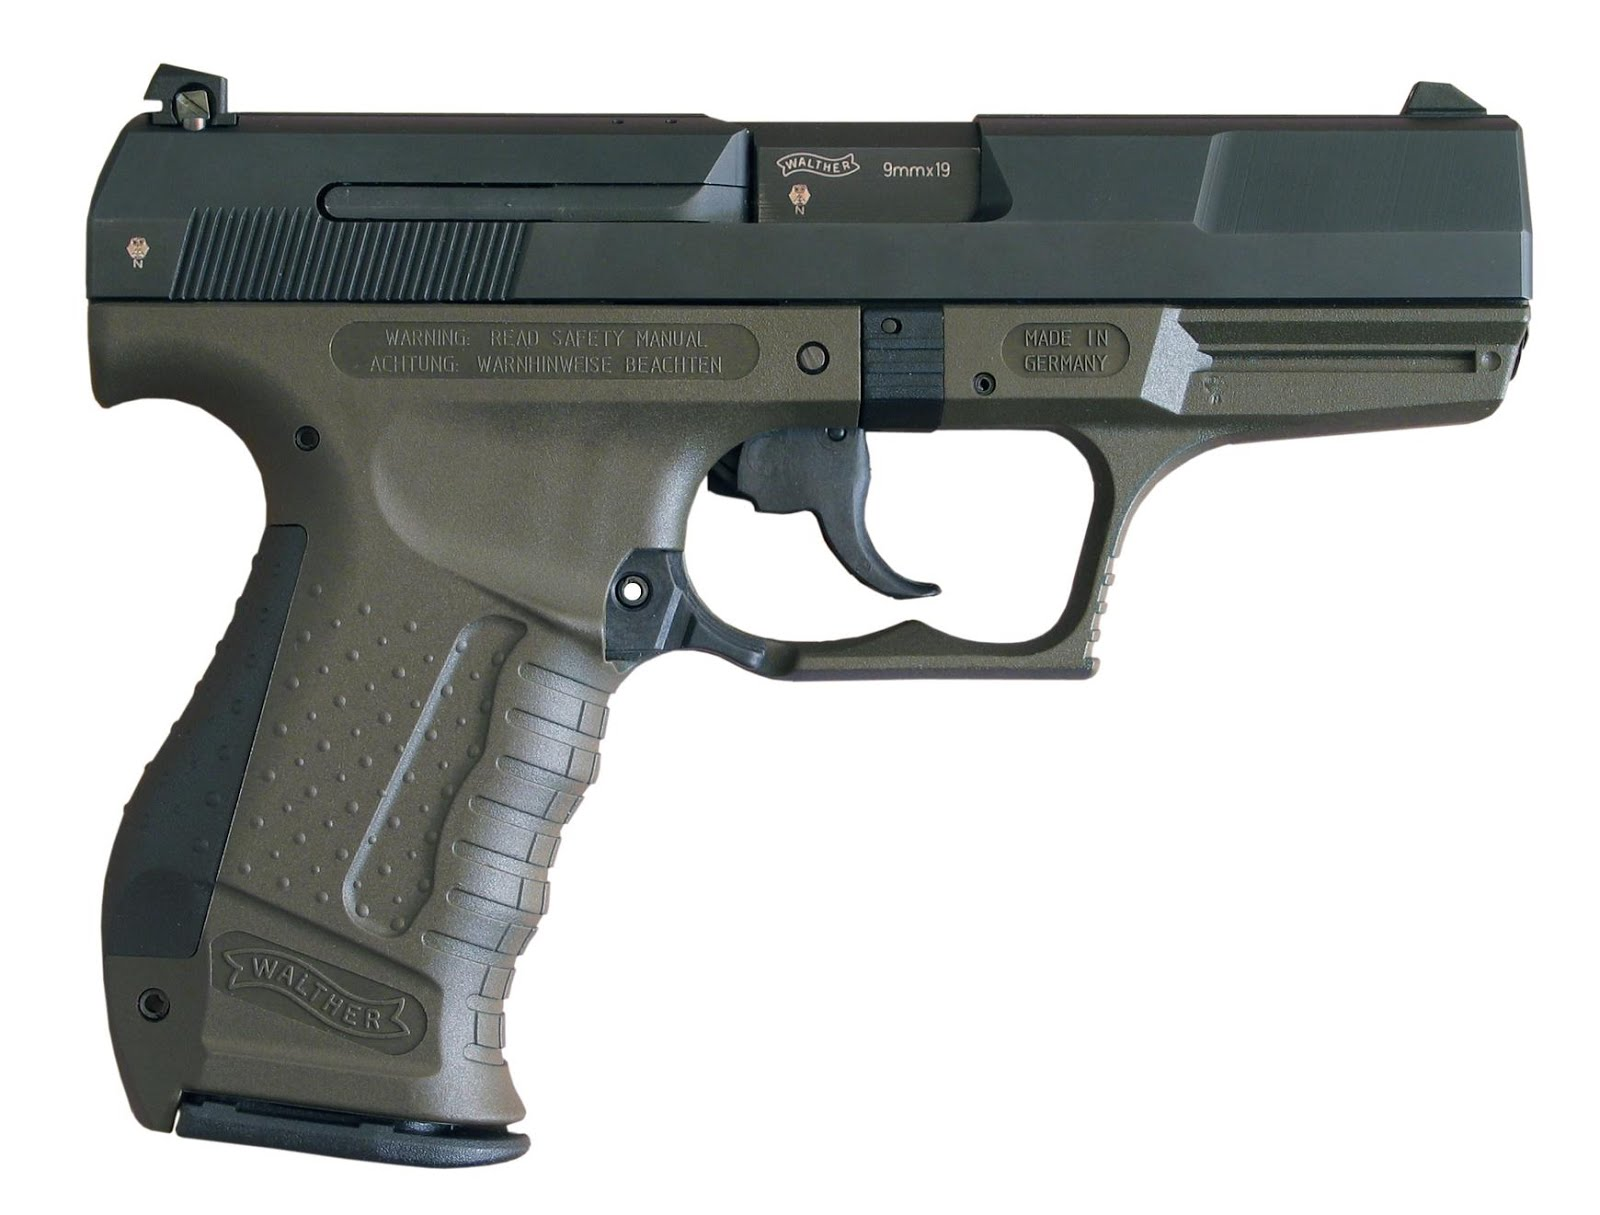 P99 - Walther Arms